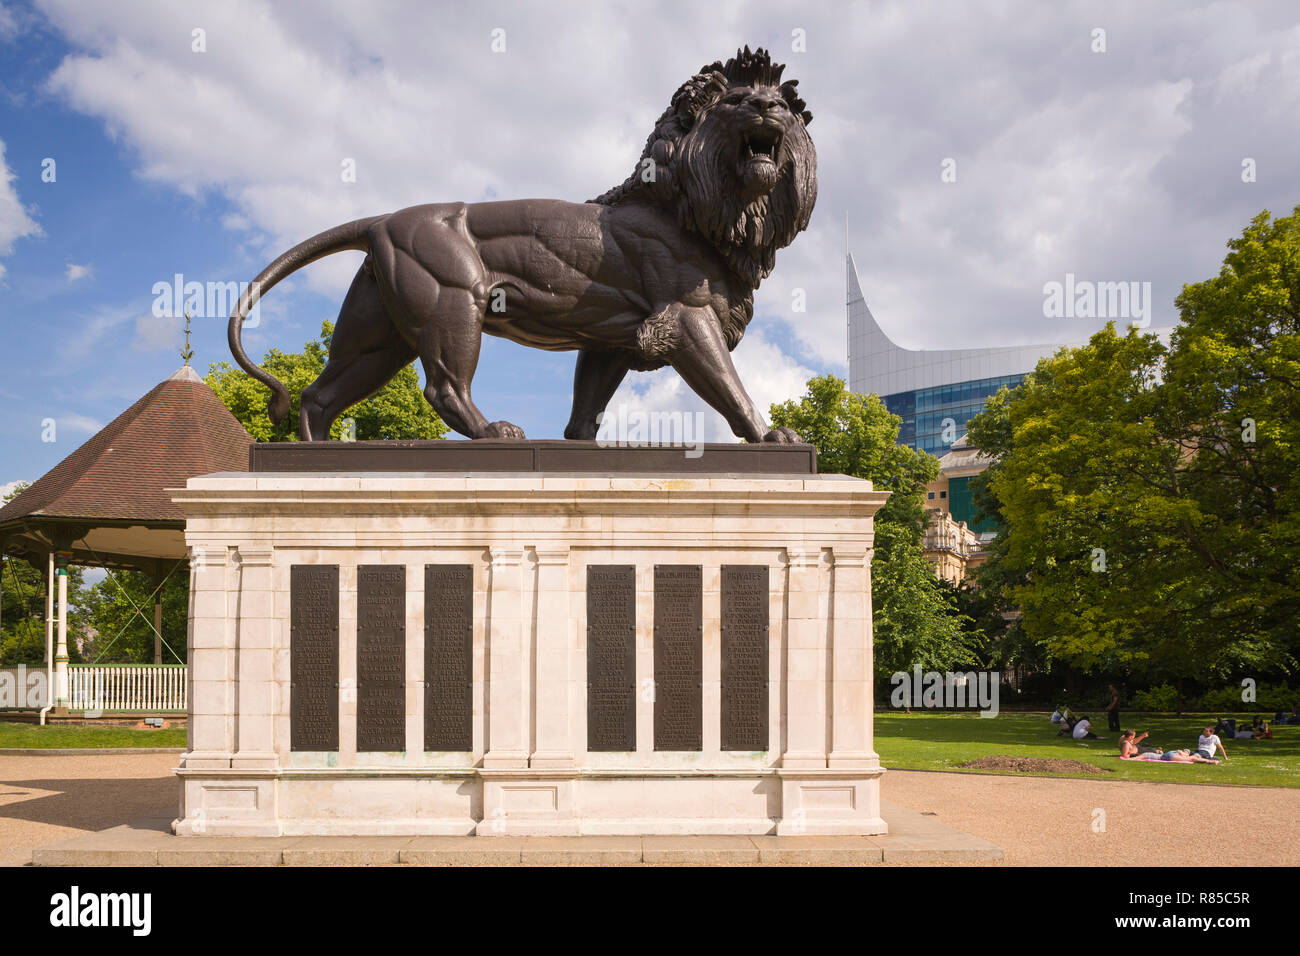 The Maiwand Lion, commonly known as the Forbury Lion, a memorial for those lost in the Second Anglo-Afghan War, Reading, Berkshire - Stock Image